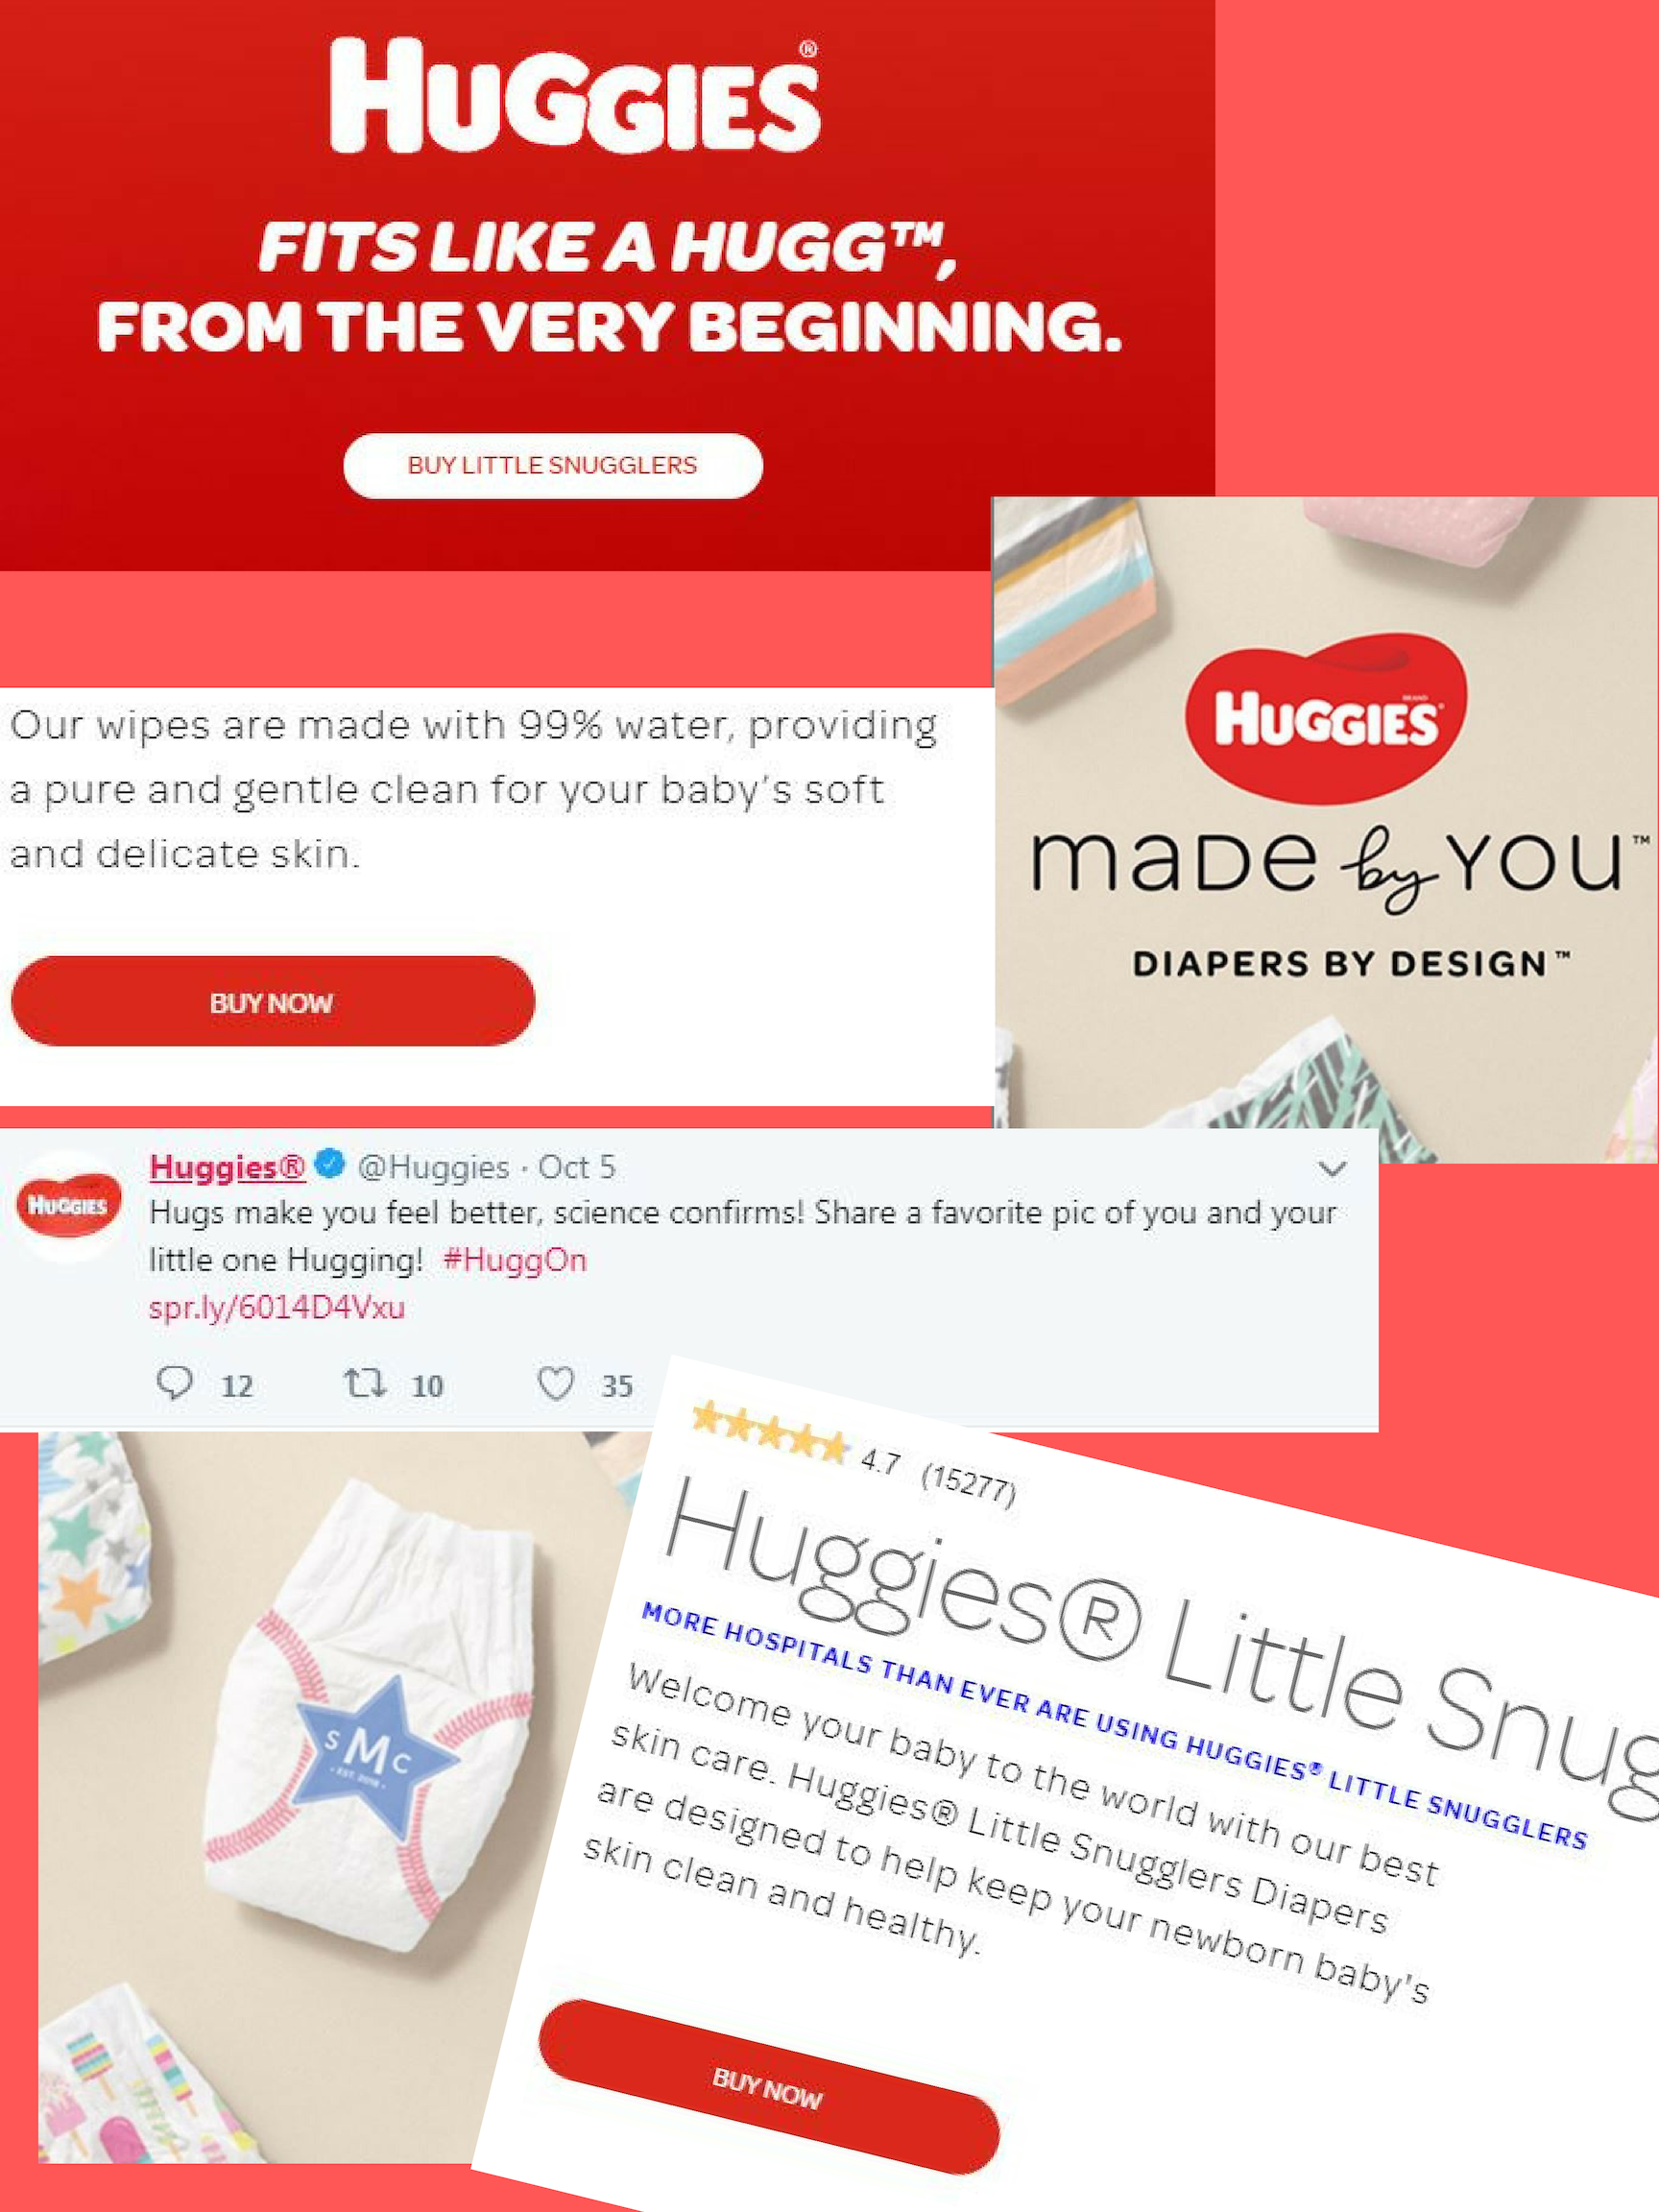 Big Boy #5: - Company: HuggiesBrand Voice: Mushy and WarmWhat you can learn from them: Mushy seems like a bad thing to stick on a brand. But again - it's all about knowing your target audience. If your customers are new parents that gush and coo over Baby's every movement, then you SHOULD pile on the mush.